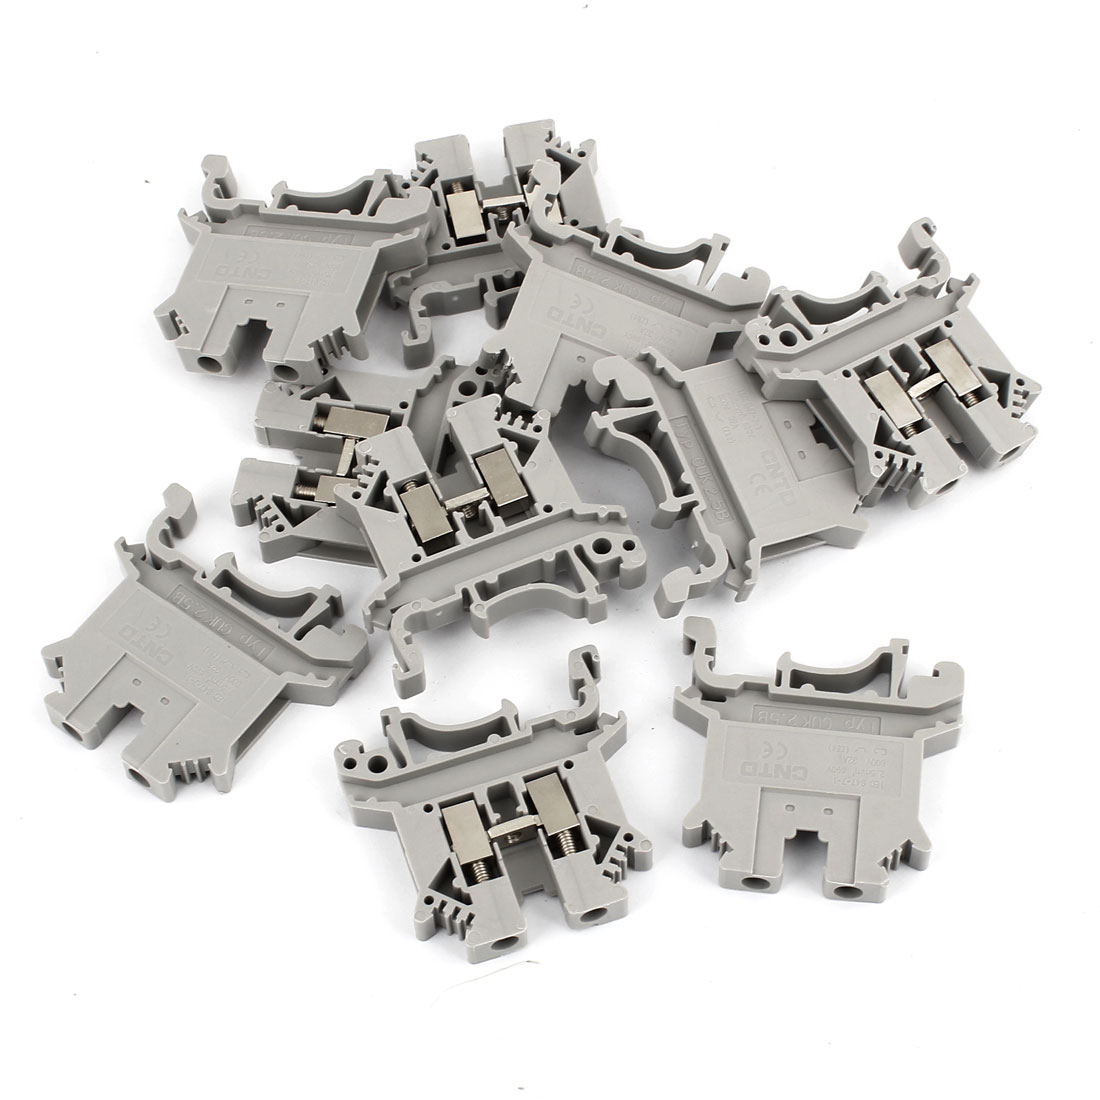 10 Pcs 800V 32A UK2.5B Type 2.5mm2 Screw Contact Terminal Block Connector